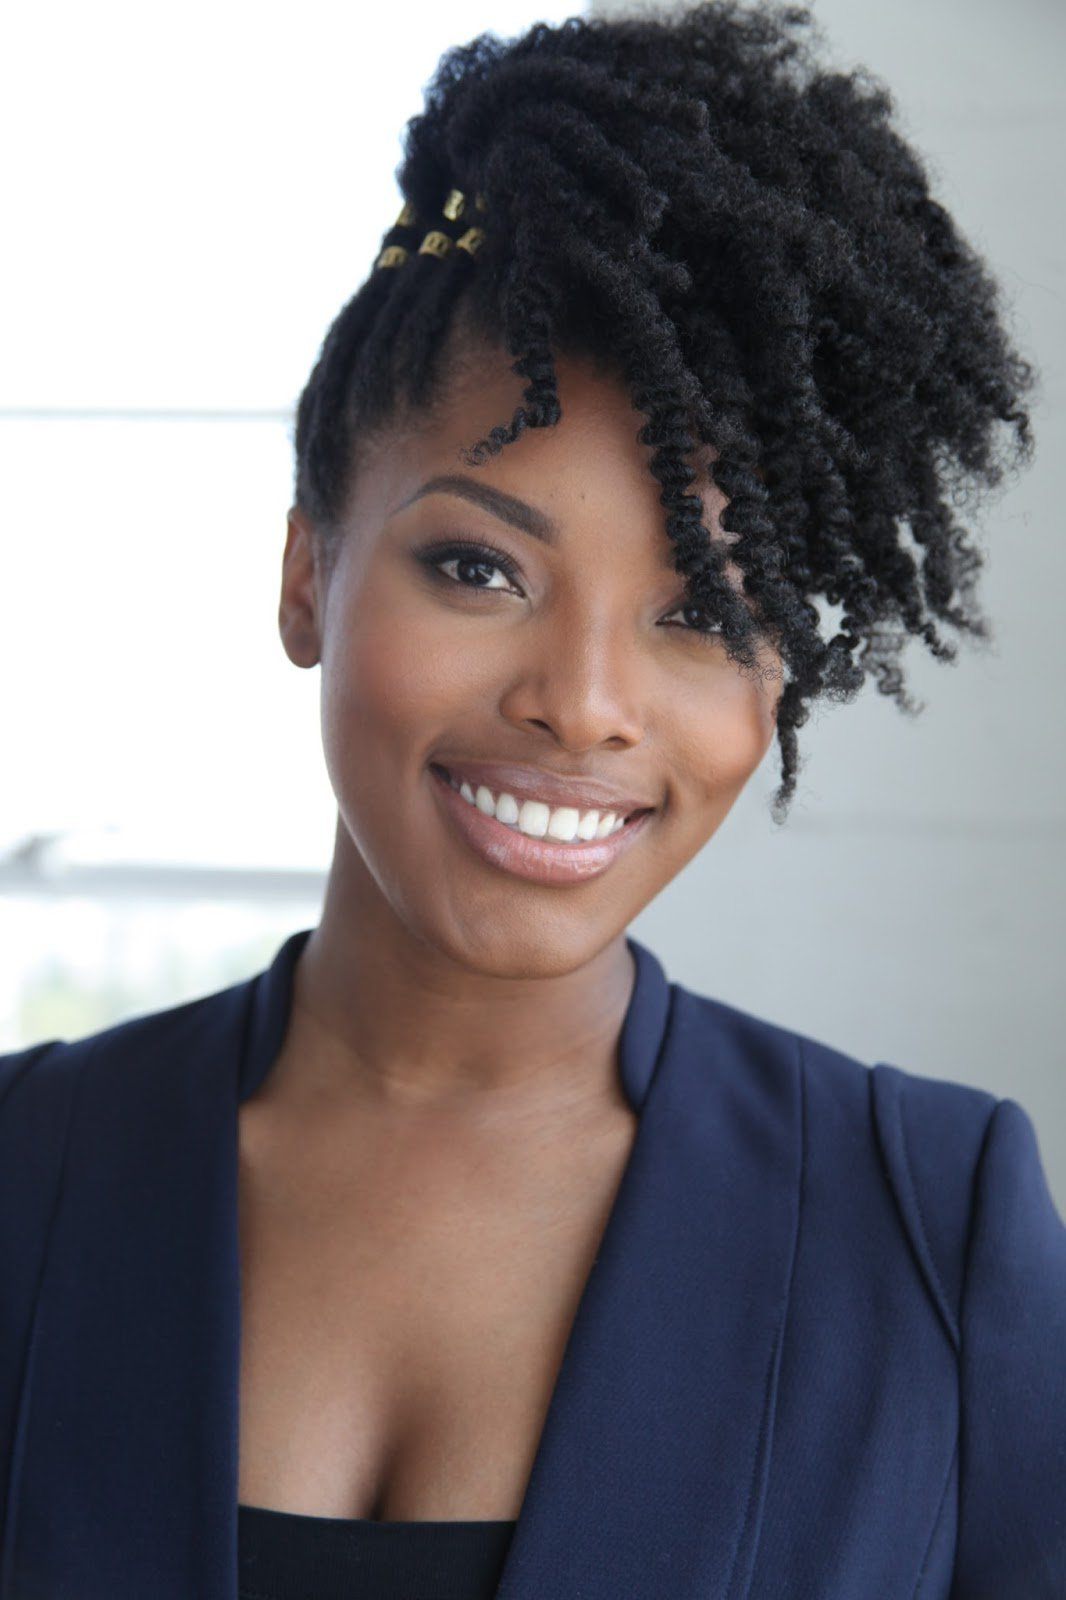 6 Natural Hair Stereotypes I Get All the Time